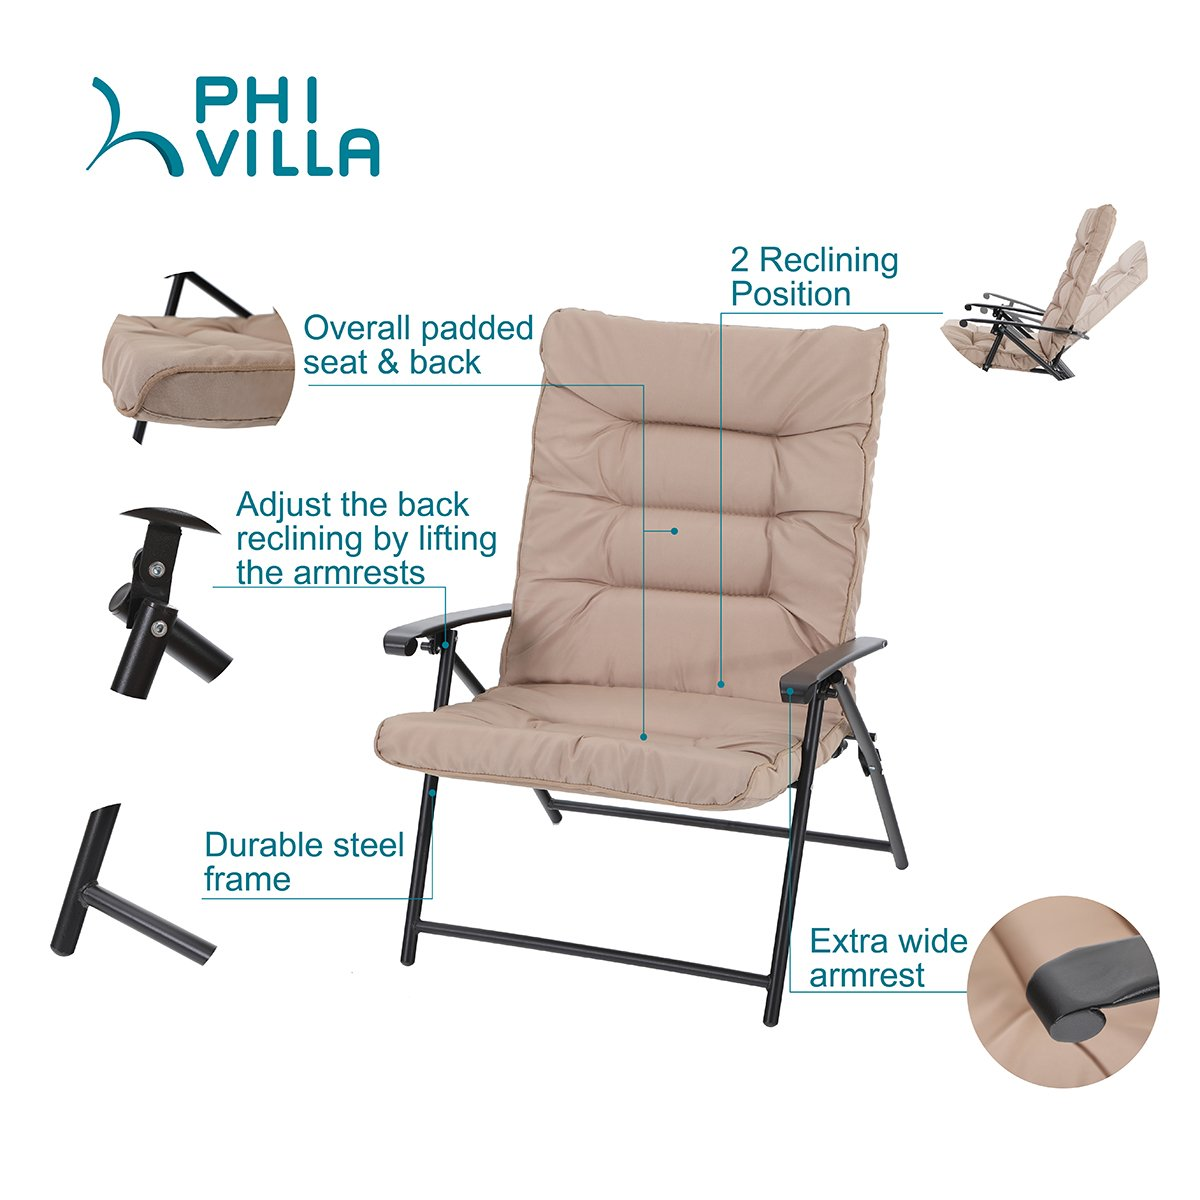 PHI VILLA Patio 3 PC Padded Folding Chair Set Adjustable Reclining 2 Position, Beige by PHI VILLA (Image #3)